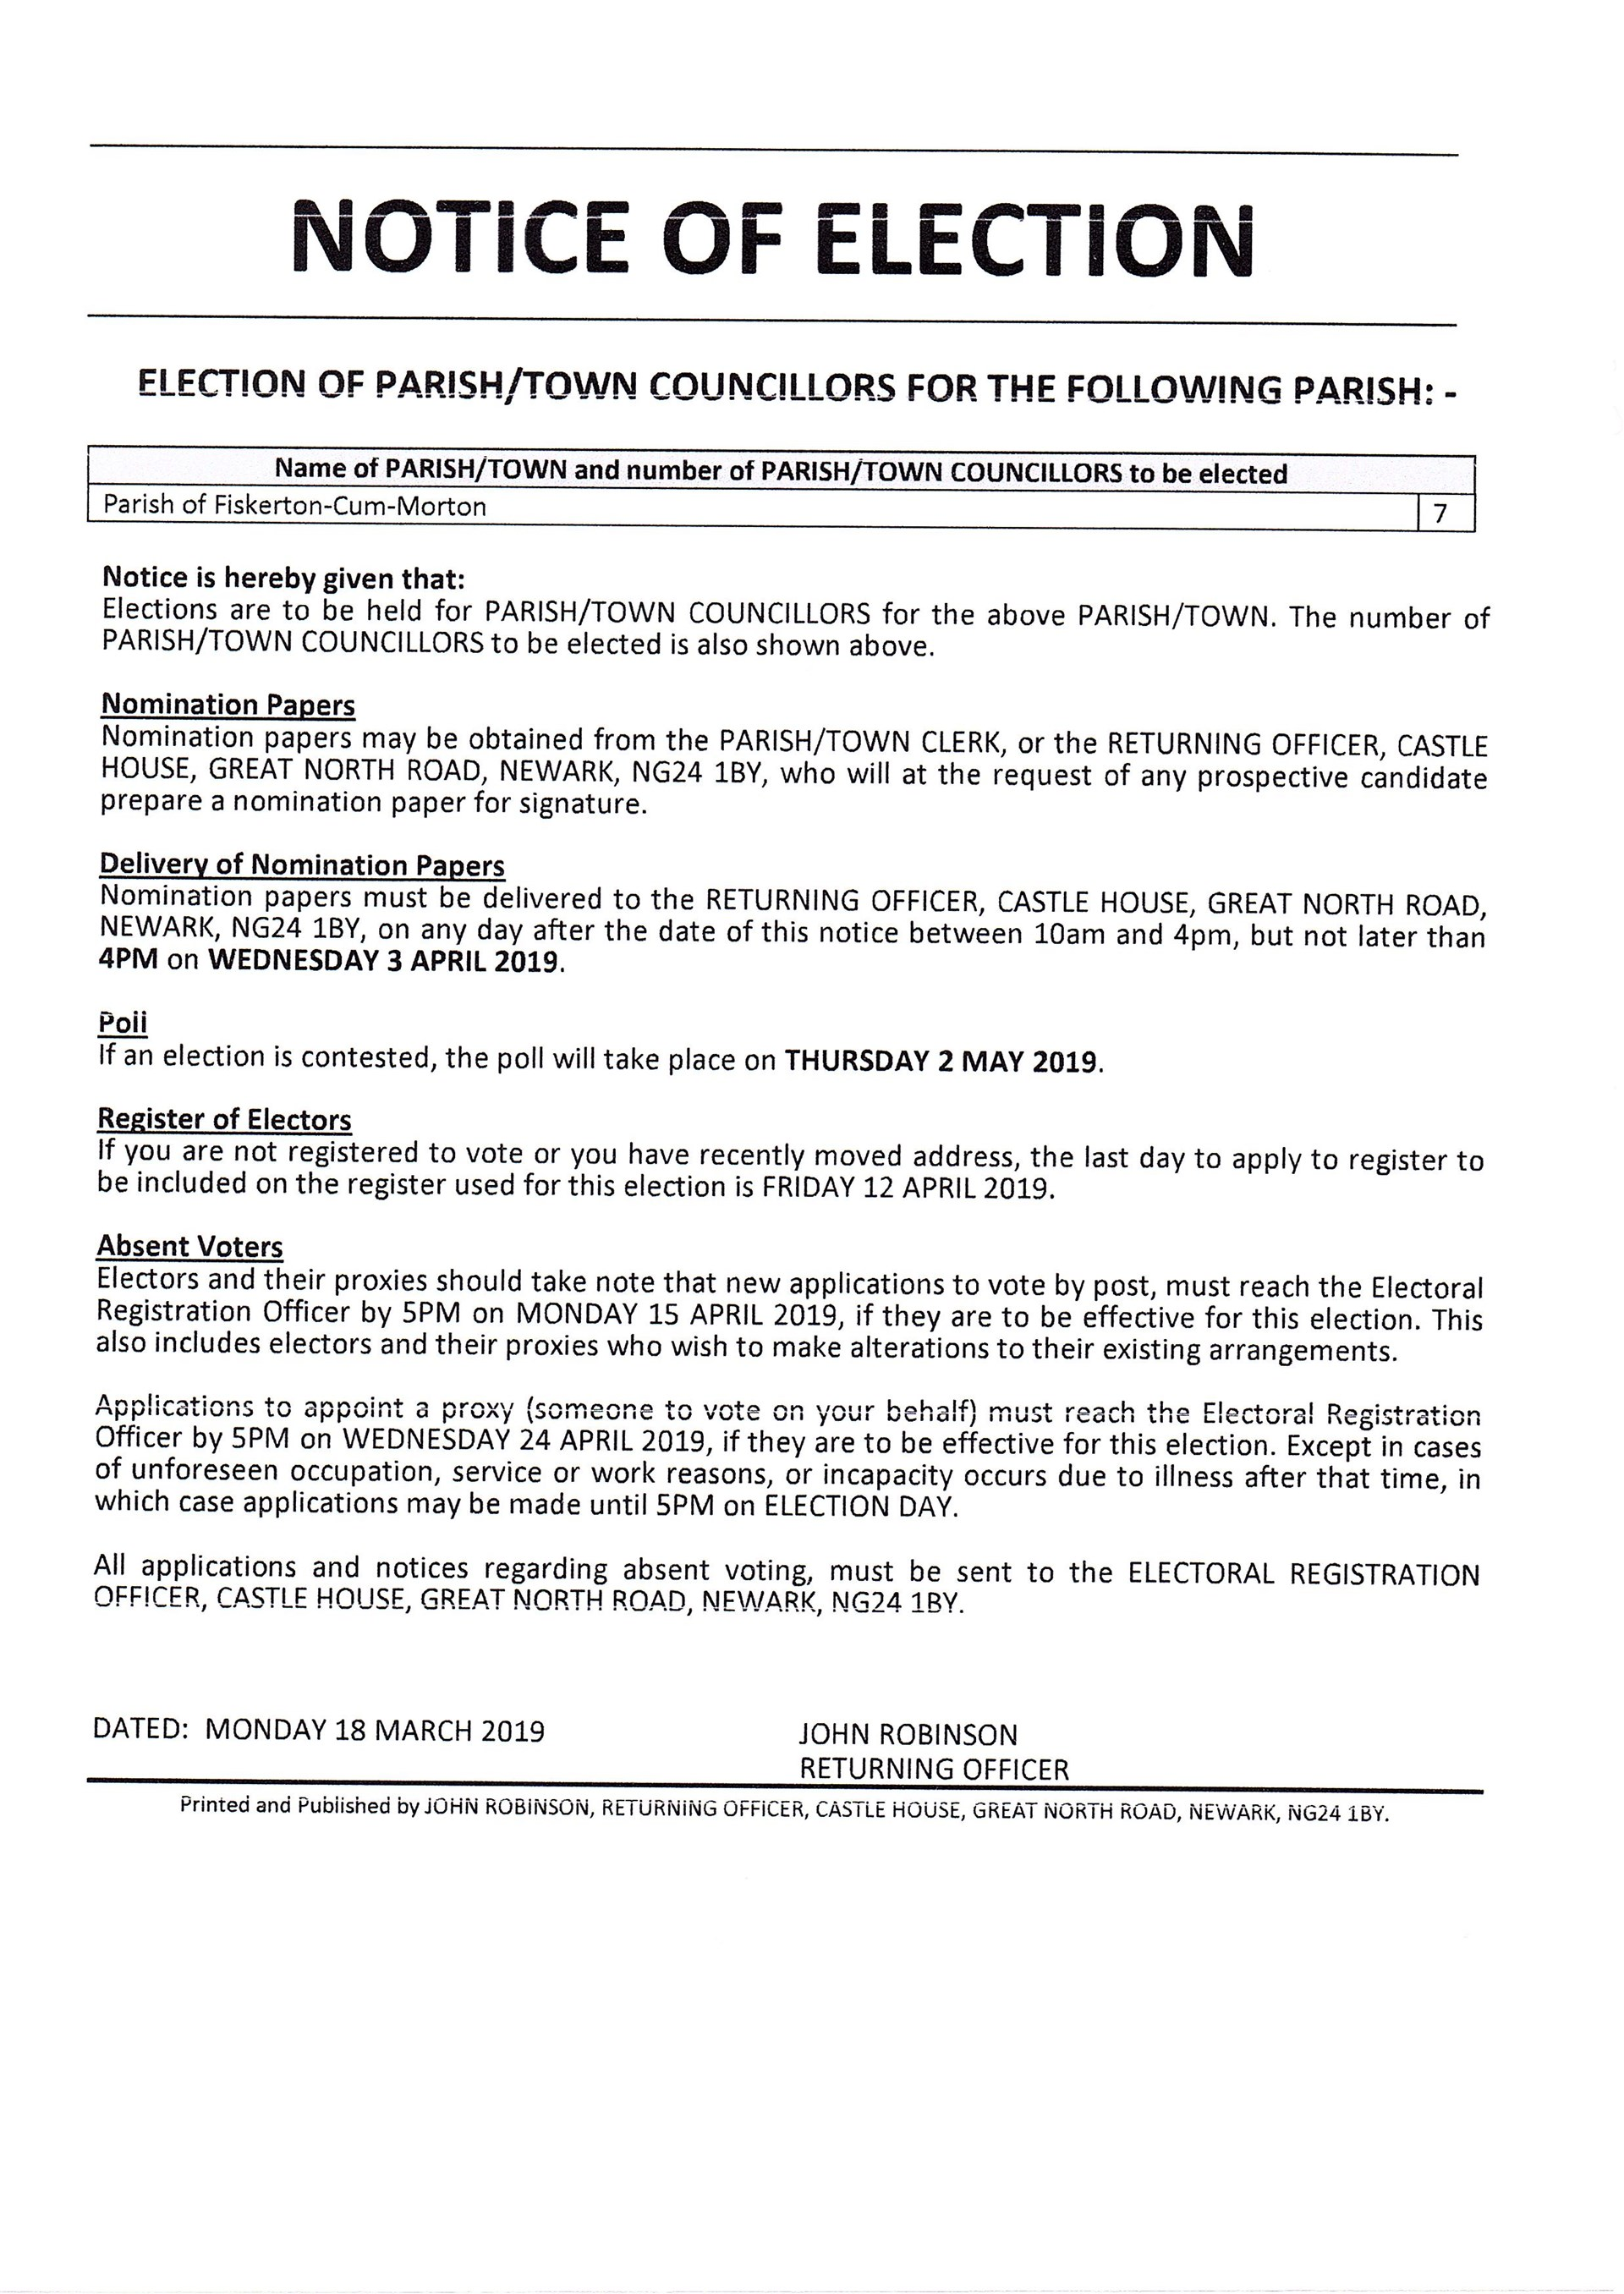 PARISH COUNCIL ELECTION NOTICE MAY 2019